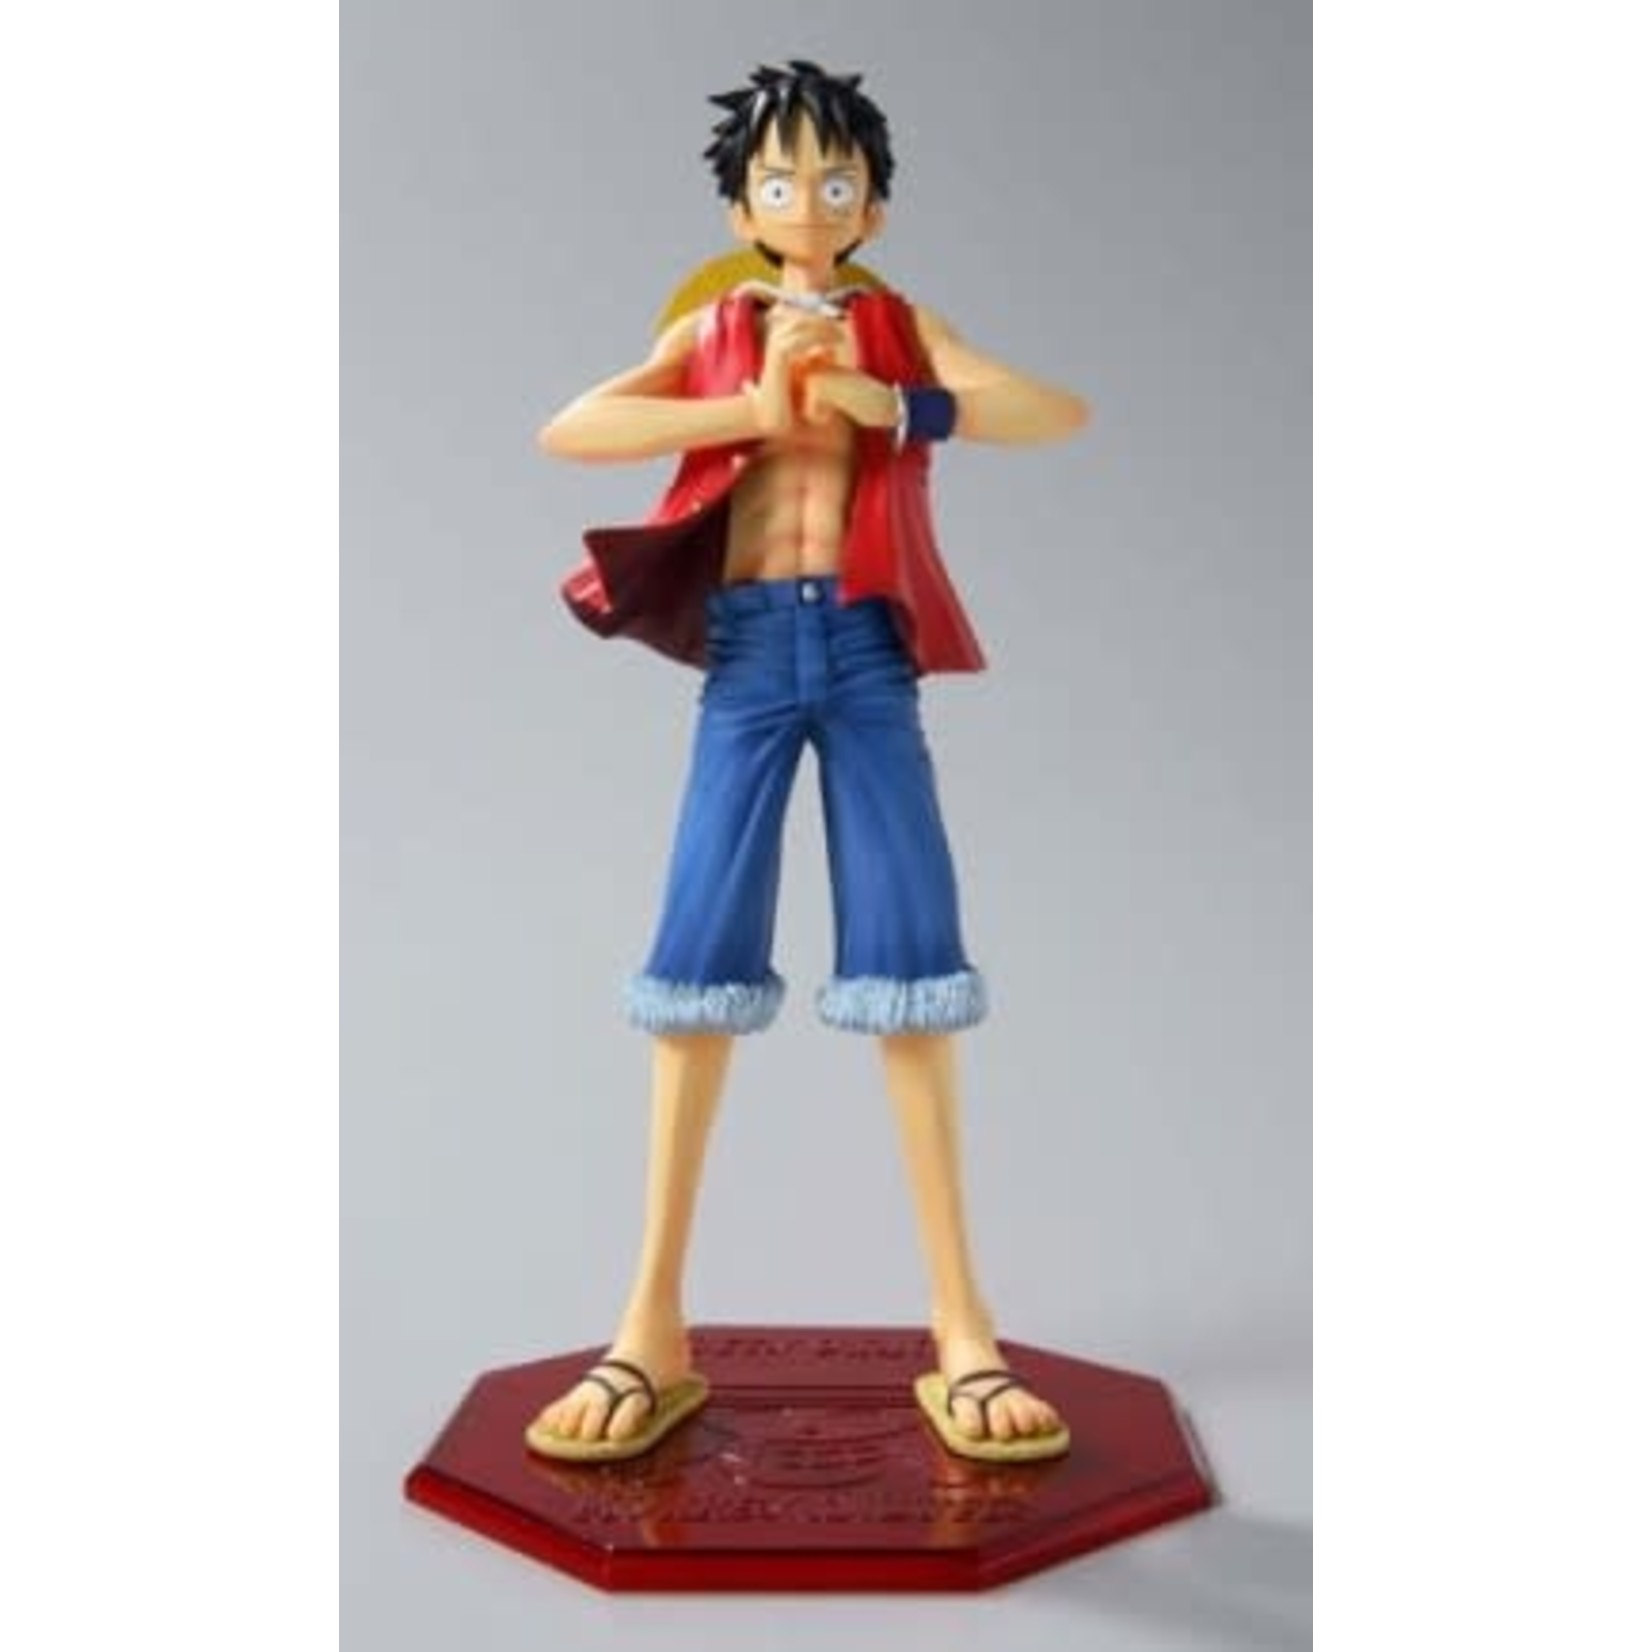 megahouse One Piece Monkey D. Luffy Portraits of Pirate Neo